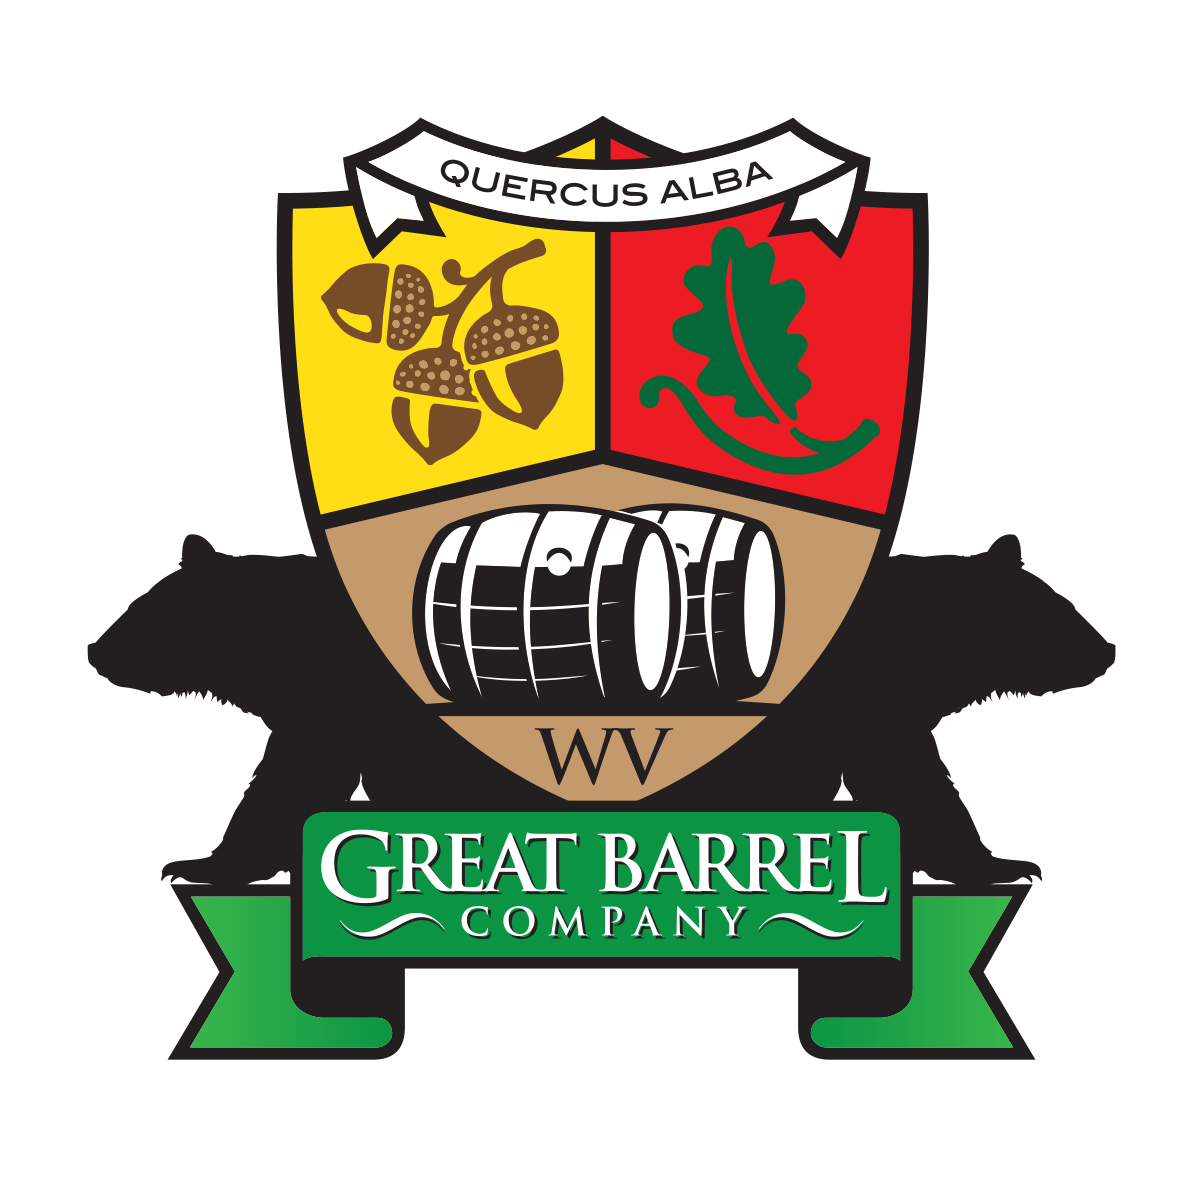 Great Barrel Company